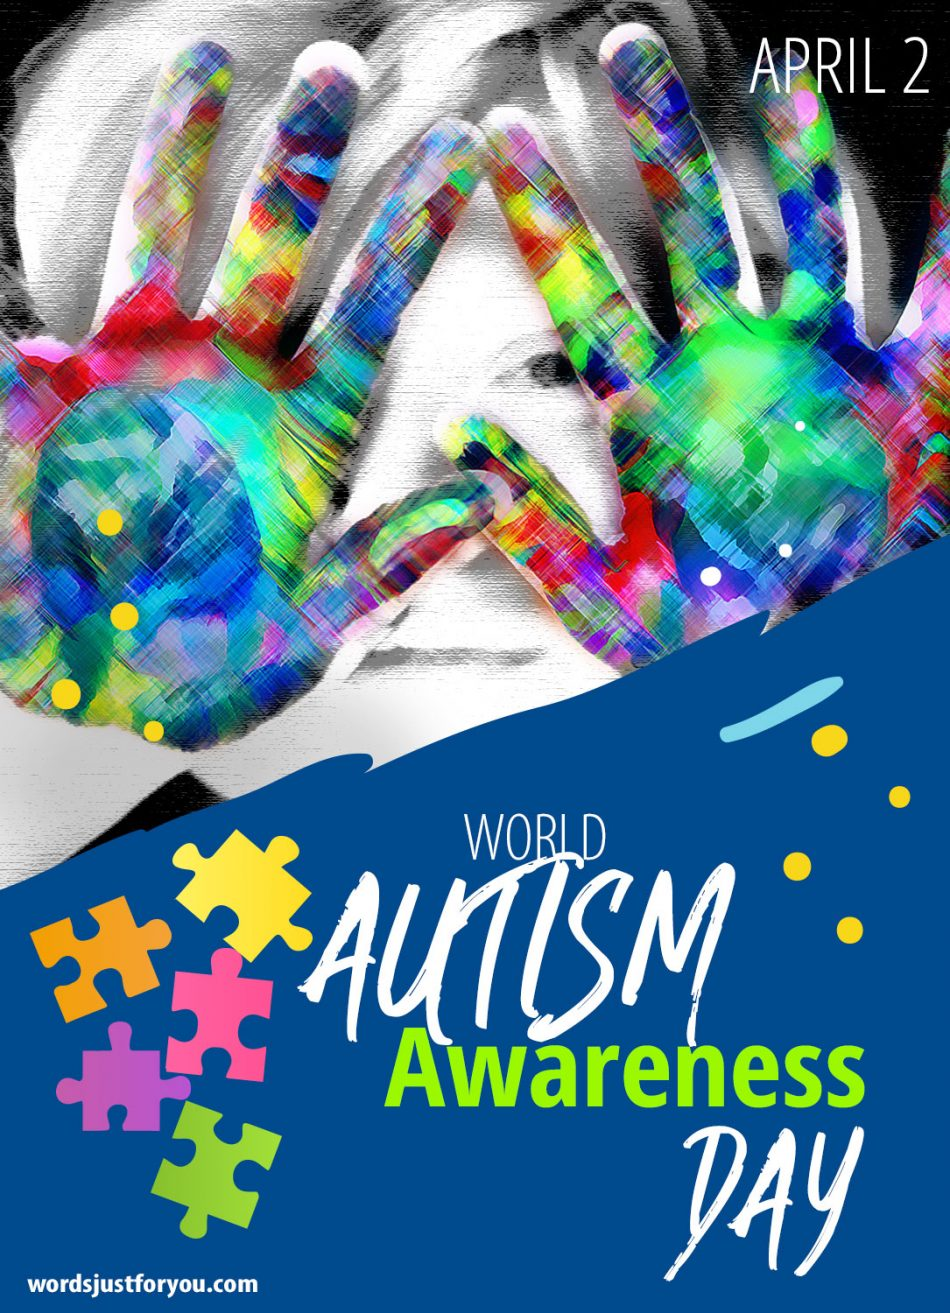 World Autism Awareness Day - 2 April